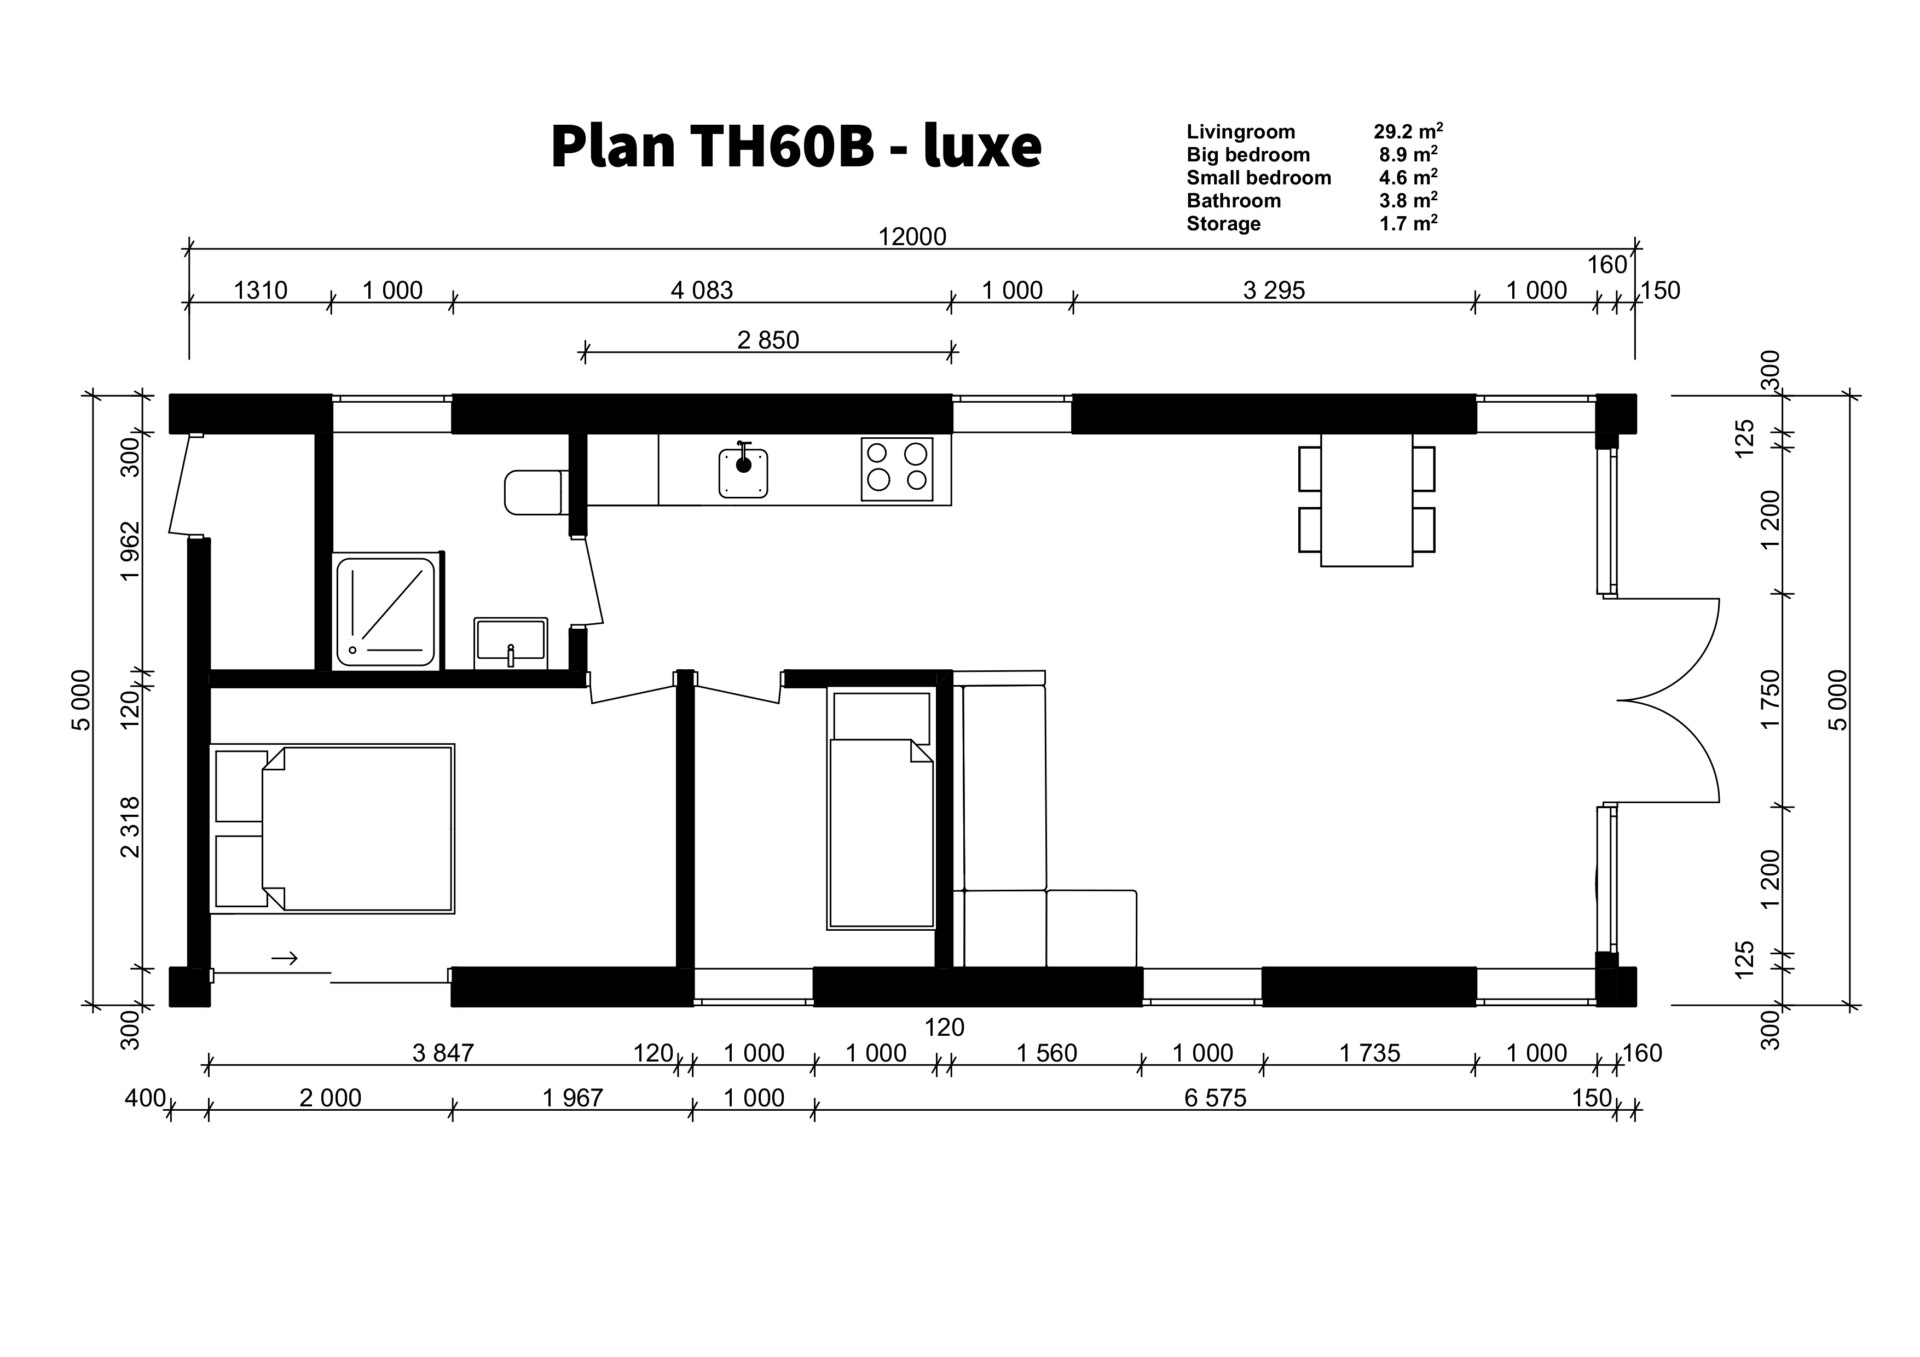 TH60B - luxe plan